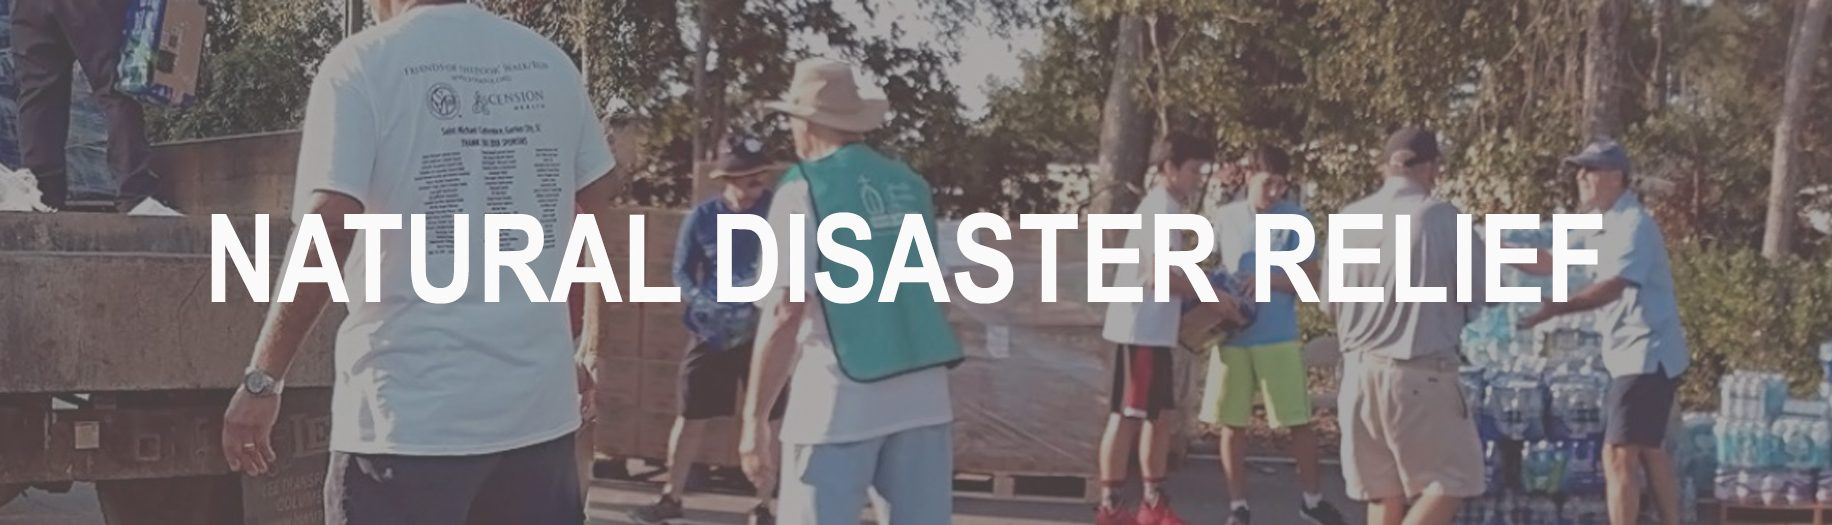 disaster relief banner